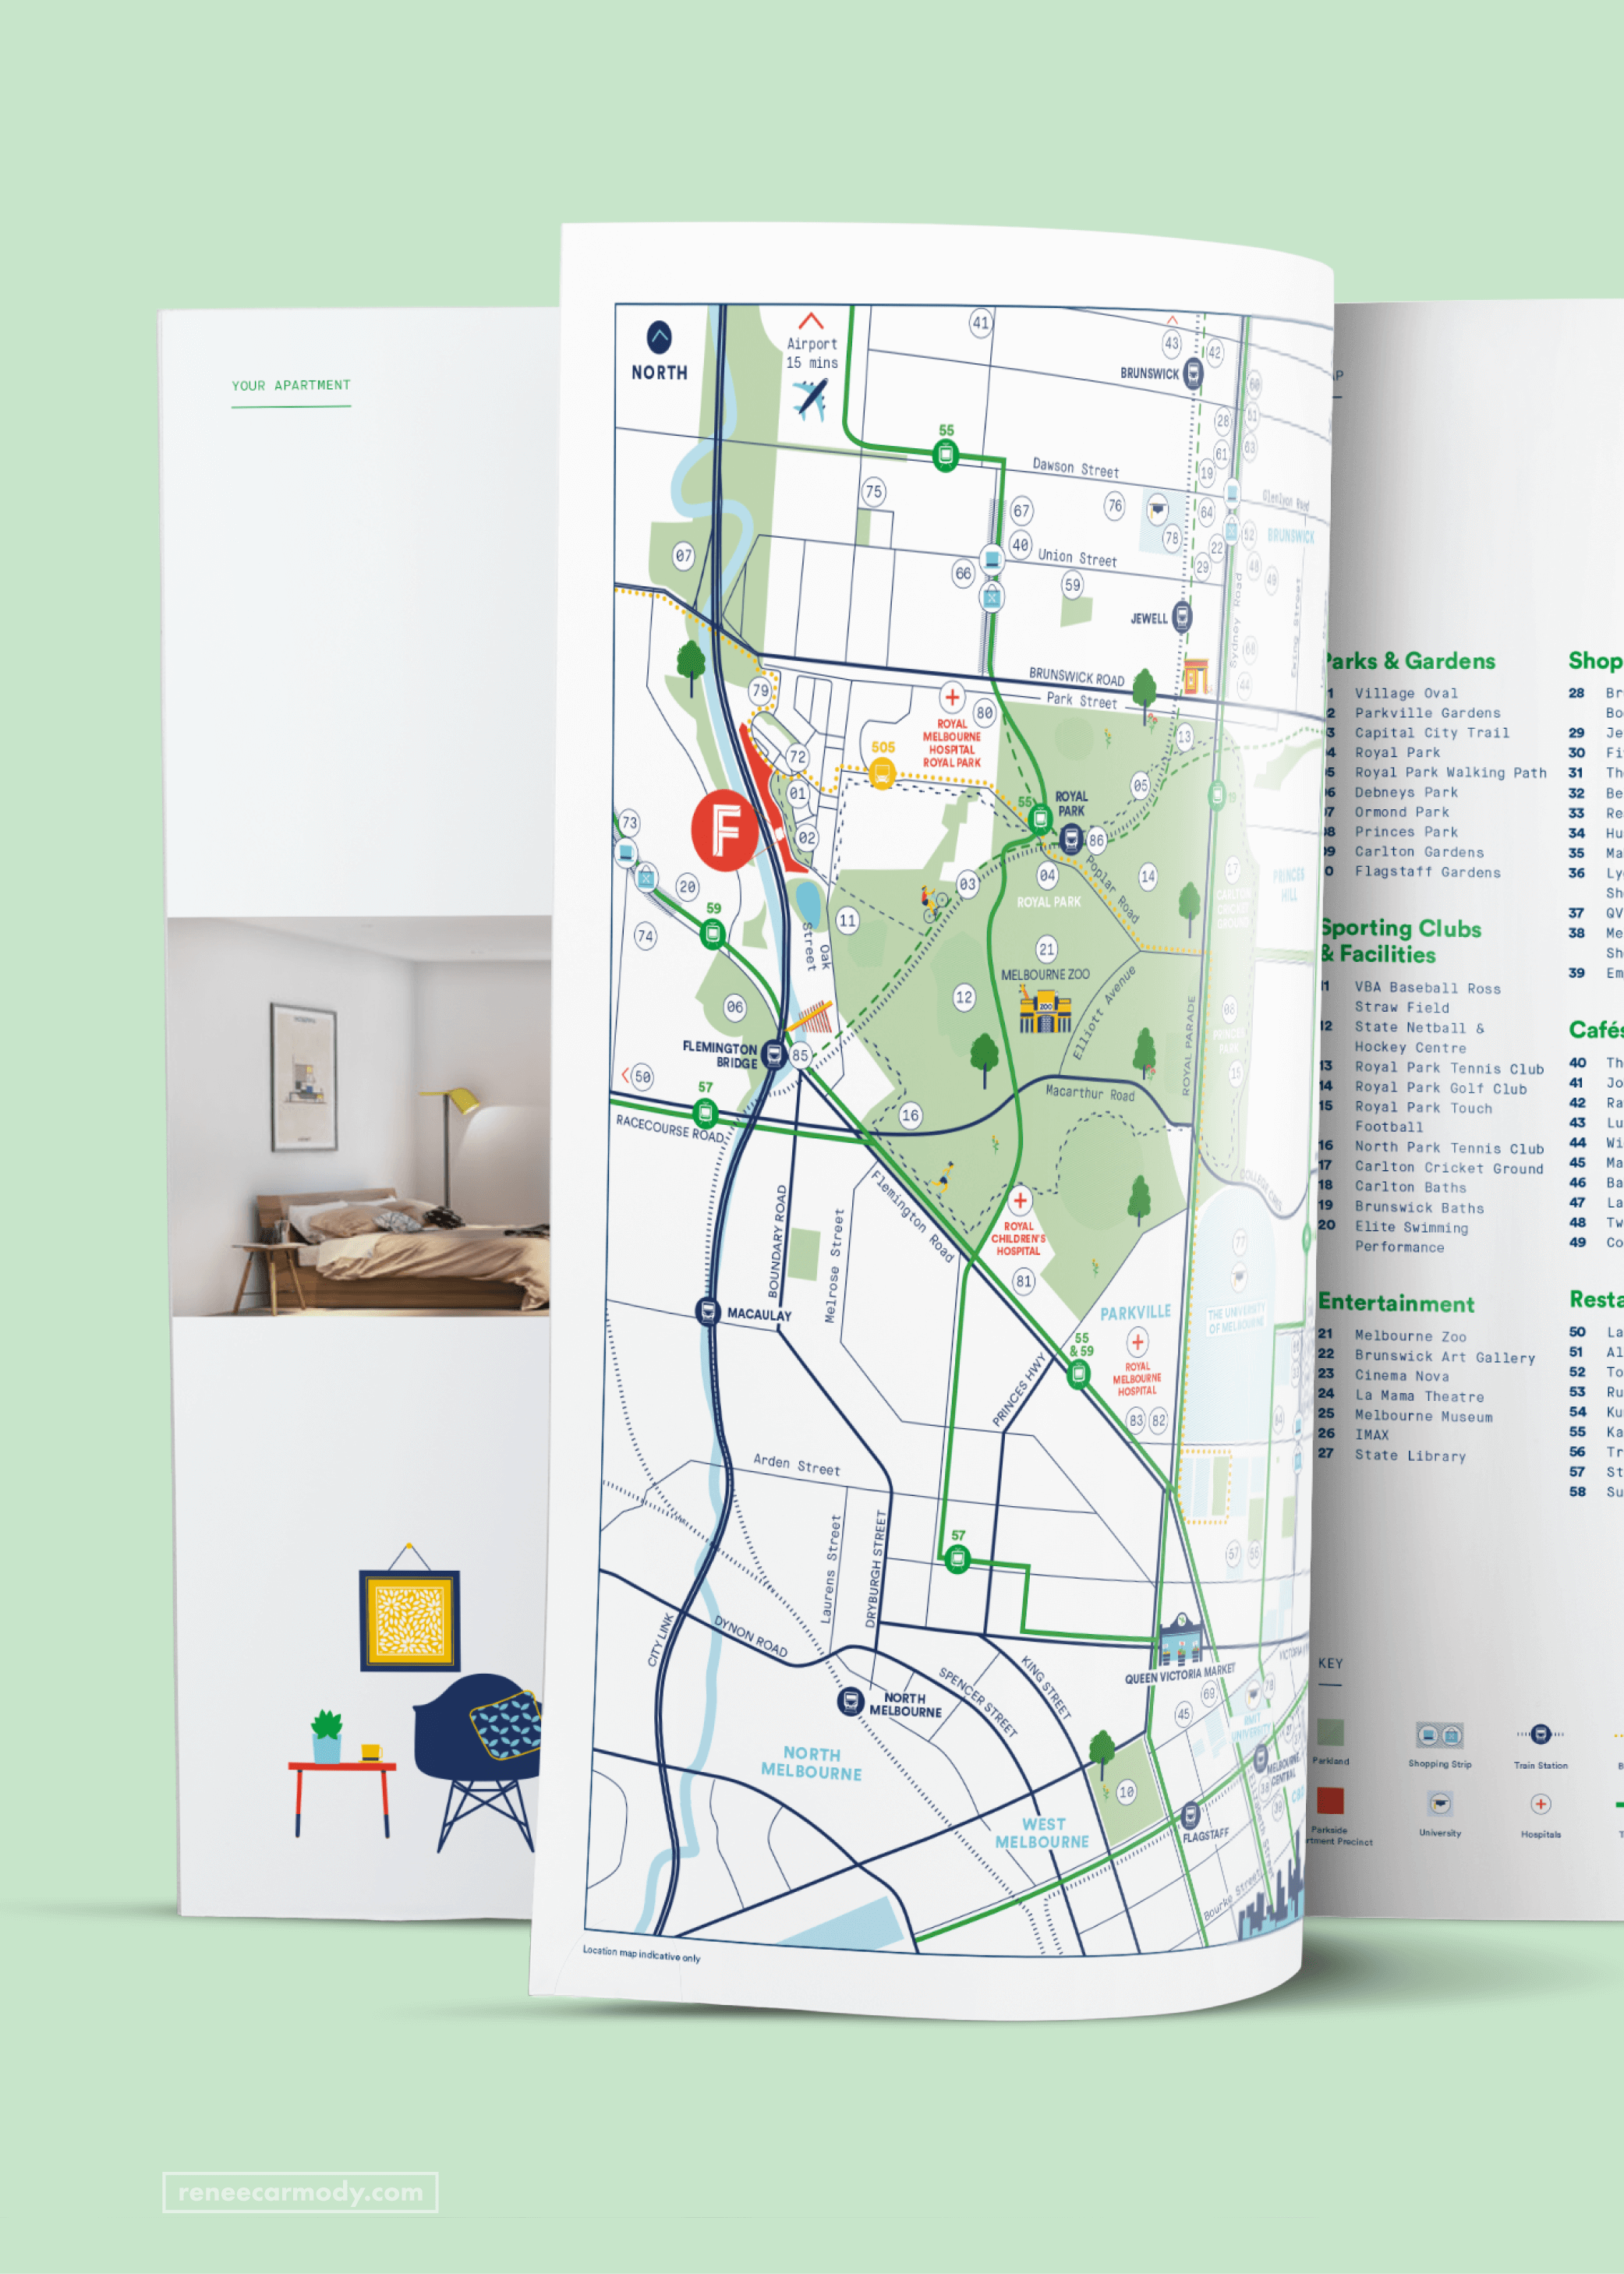 Illustrated Map for Flourish Parkside by Renée Carmody Design, commissioned by Savi Communications.